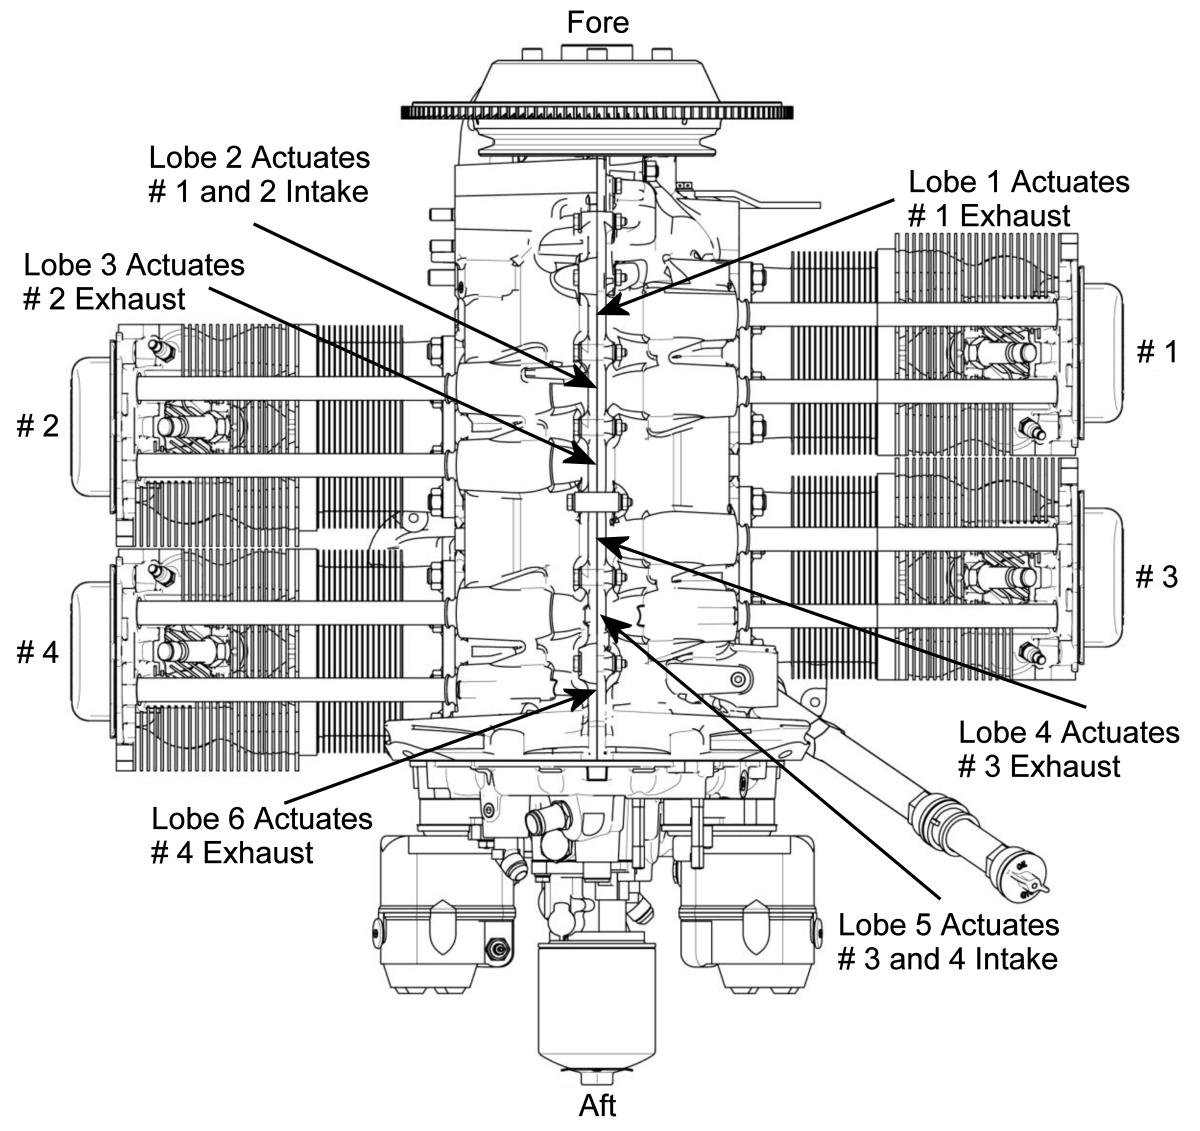 Defective Parts 2 – Lycoming Aircraft Engine Diagram